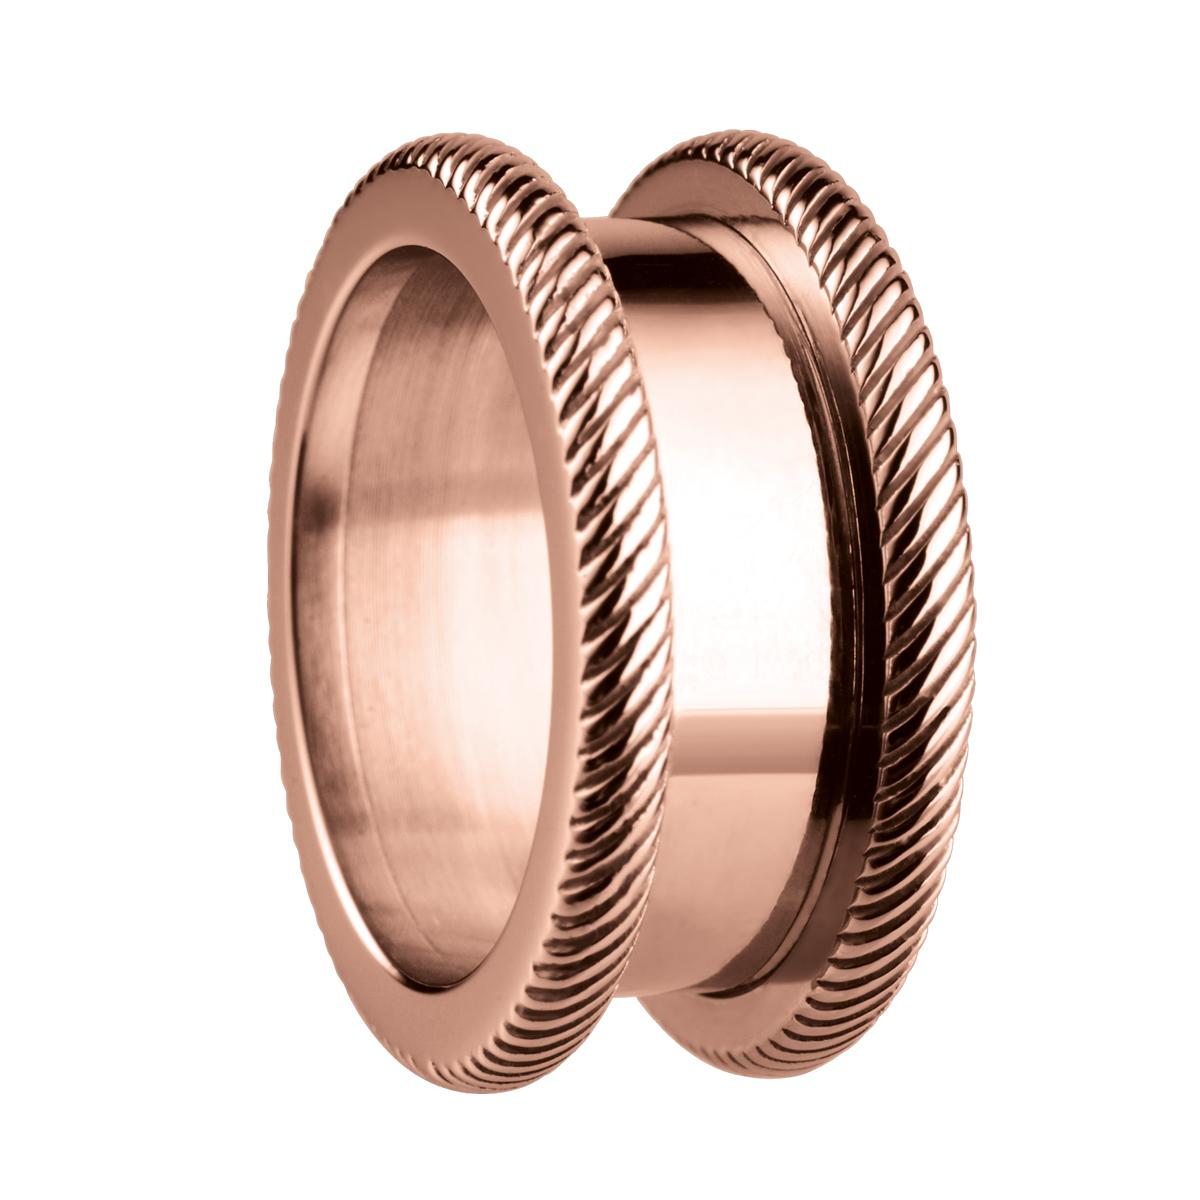 Bering Outer Ring 5213064 1